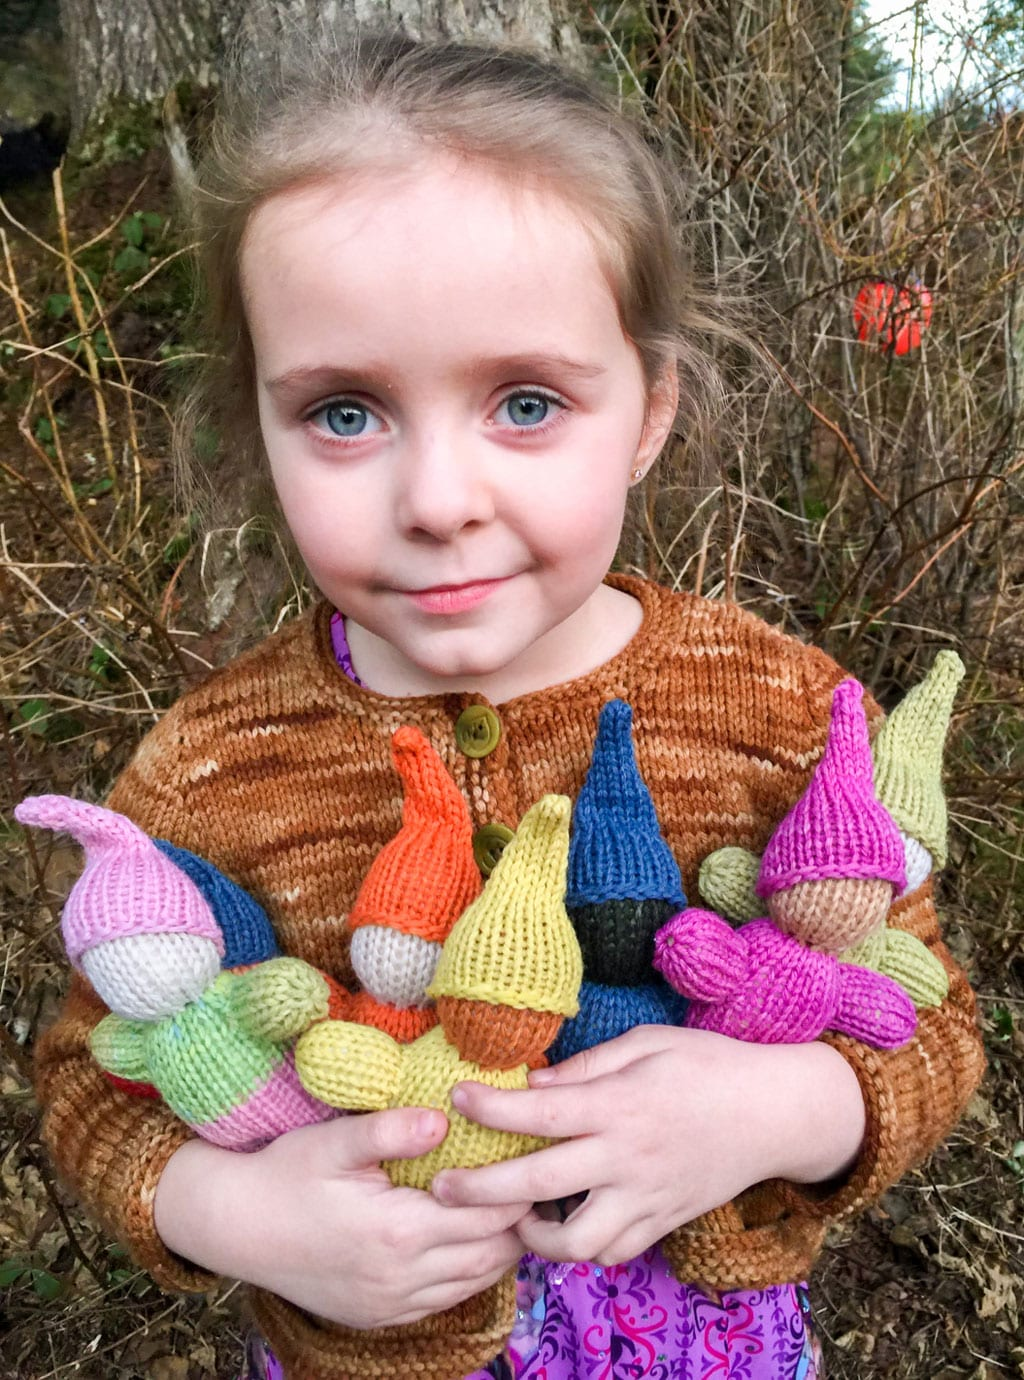 Astrid Wasson with a handful of natural dyed yarn Waldorf dolls, handmade by Astrid's mother, Amber Wasson. Photo courtesy Rainbow Forest/For The Cordova Times